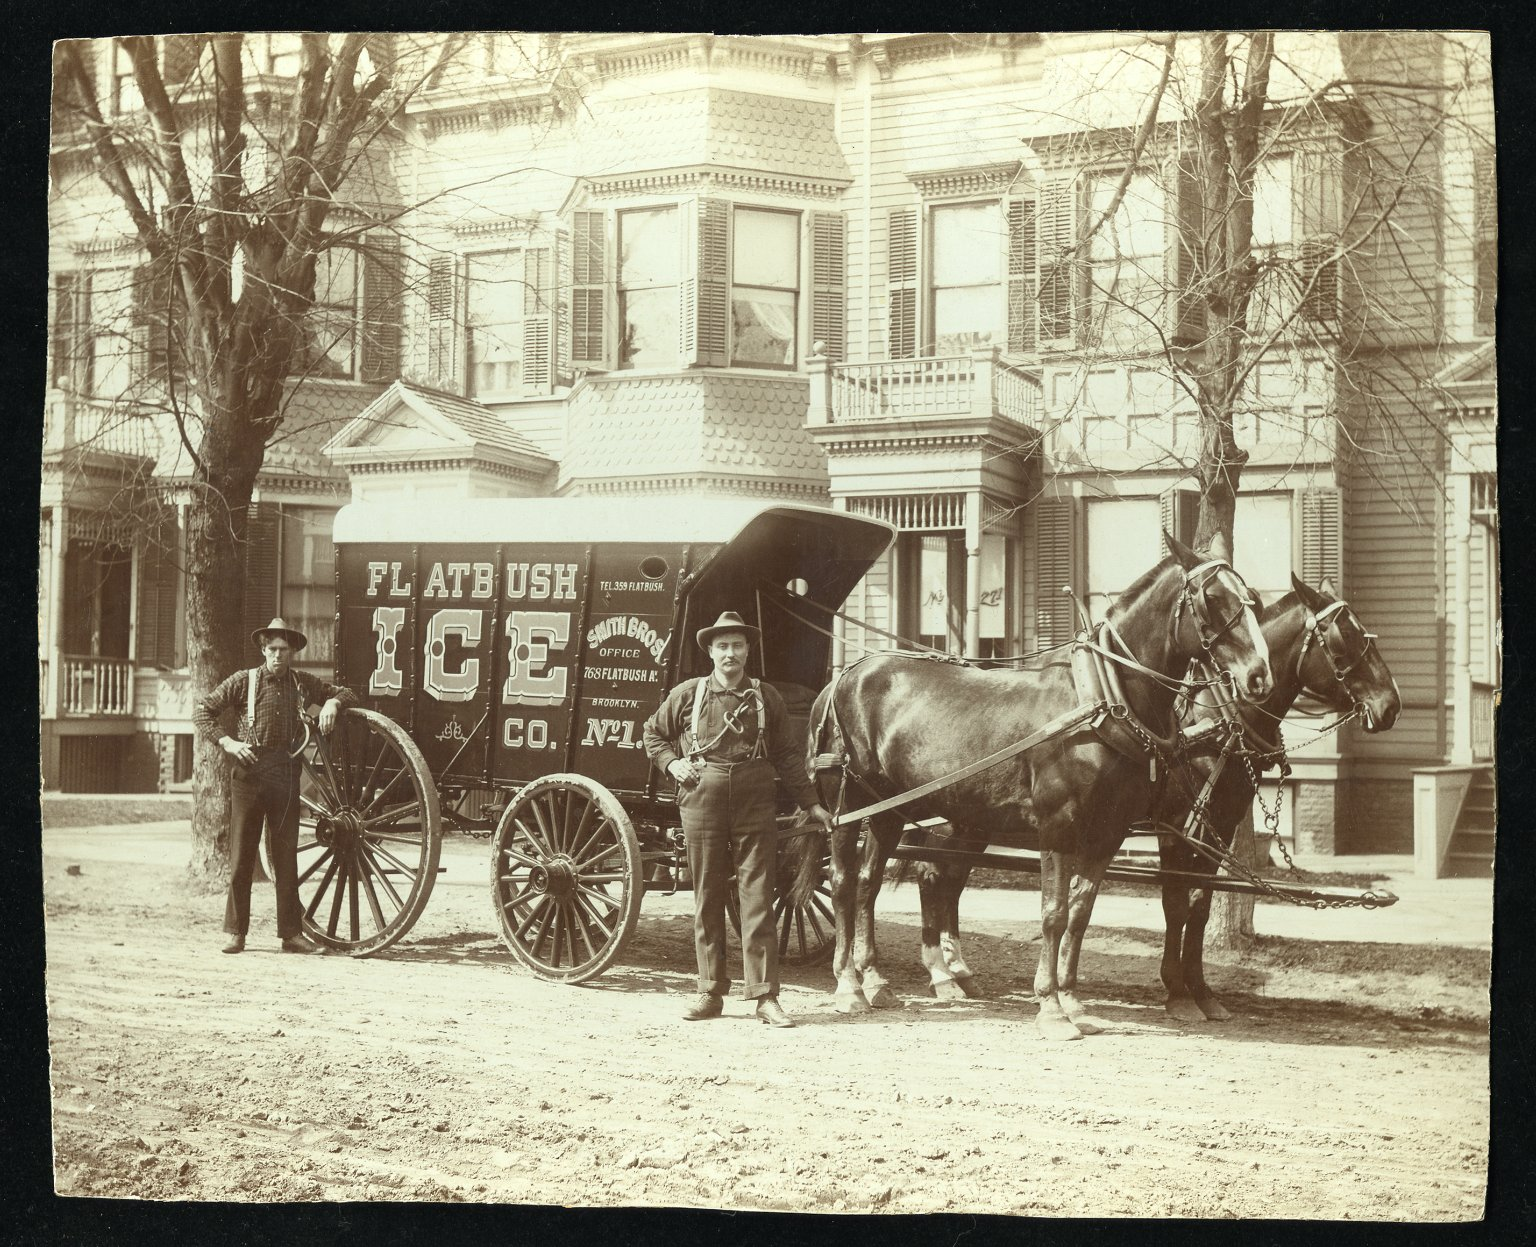 Withrop Street, Flatbush, Brooklyn, 1904